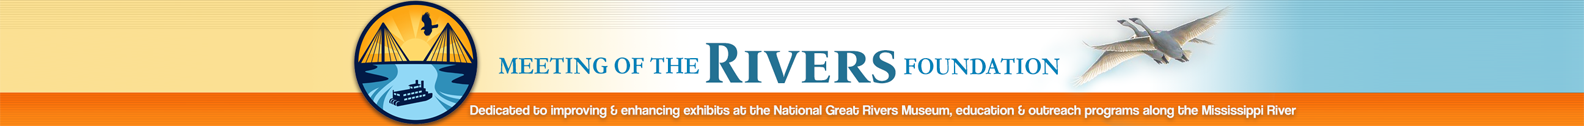 Meeting of the Rivers Foundation Logo